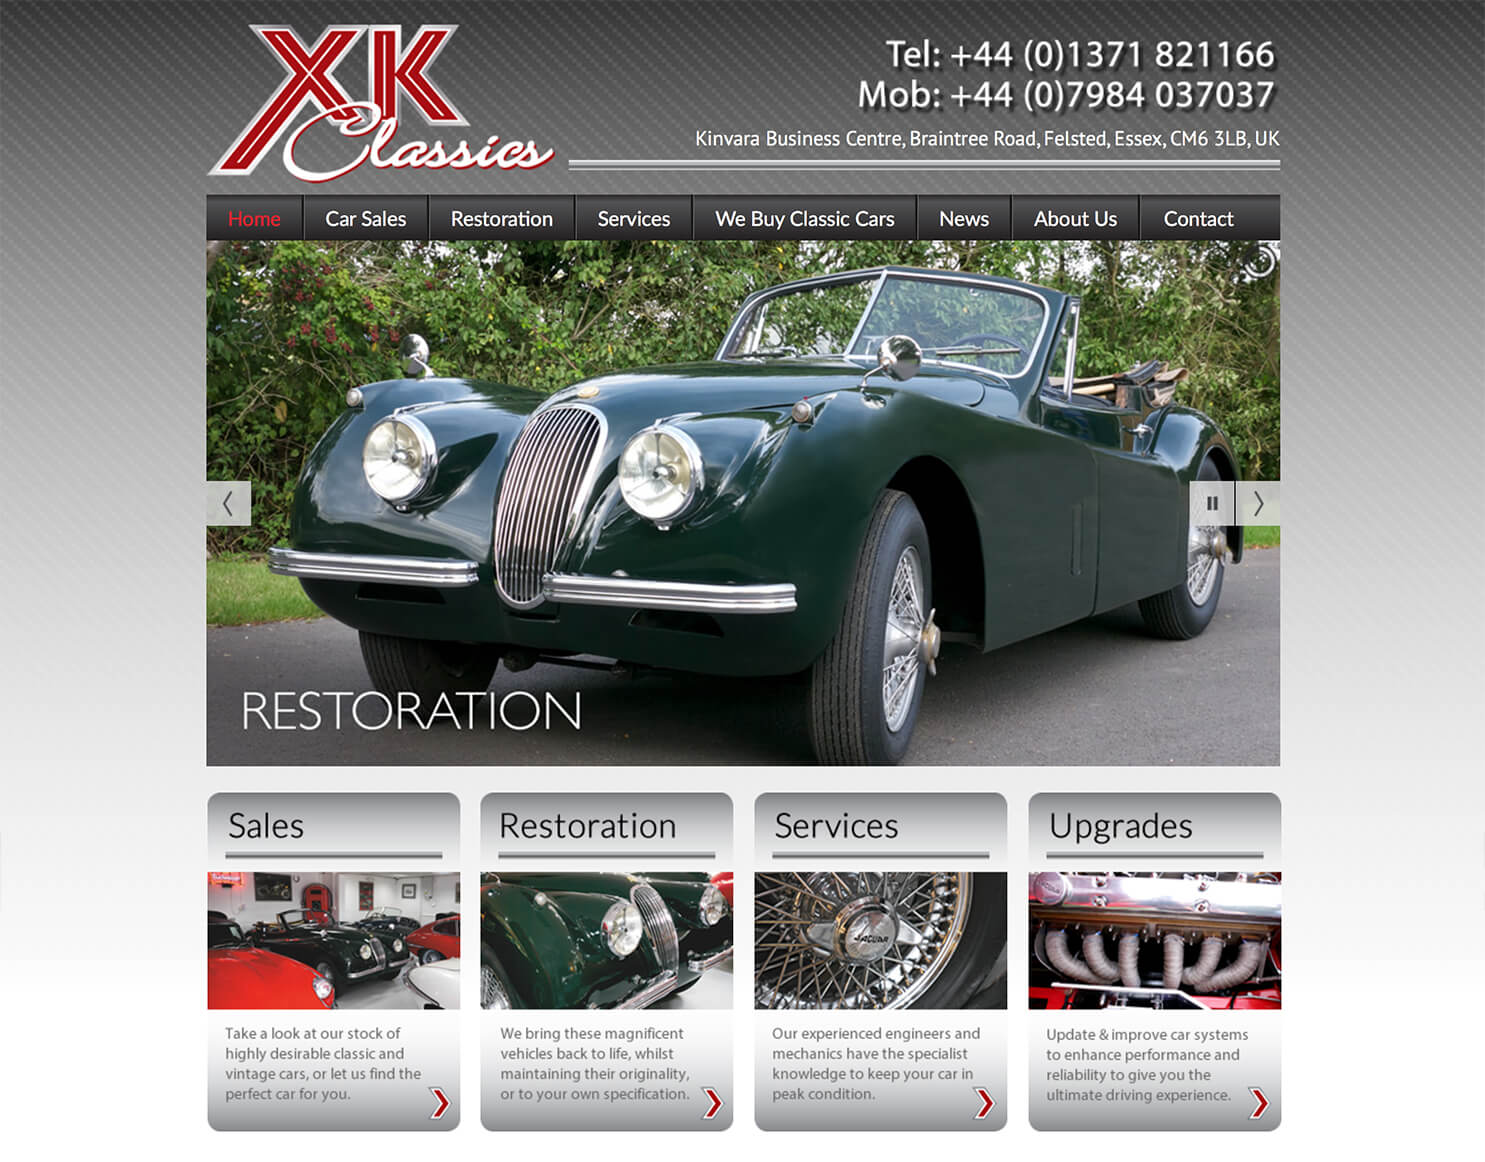 www.xkclassics.uk website